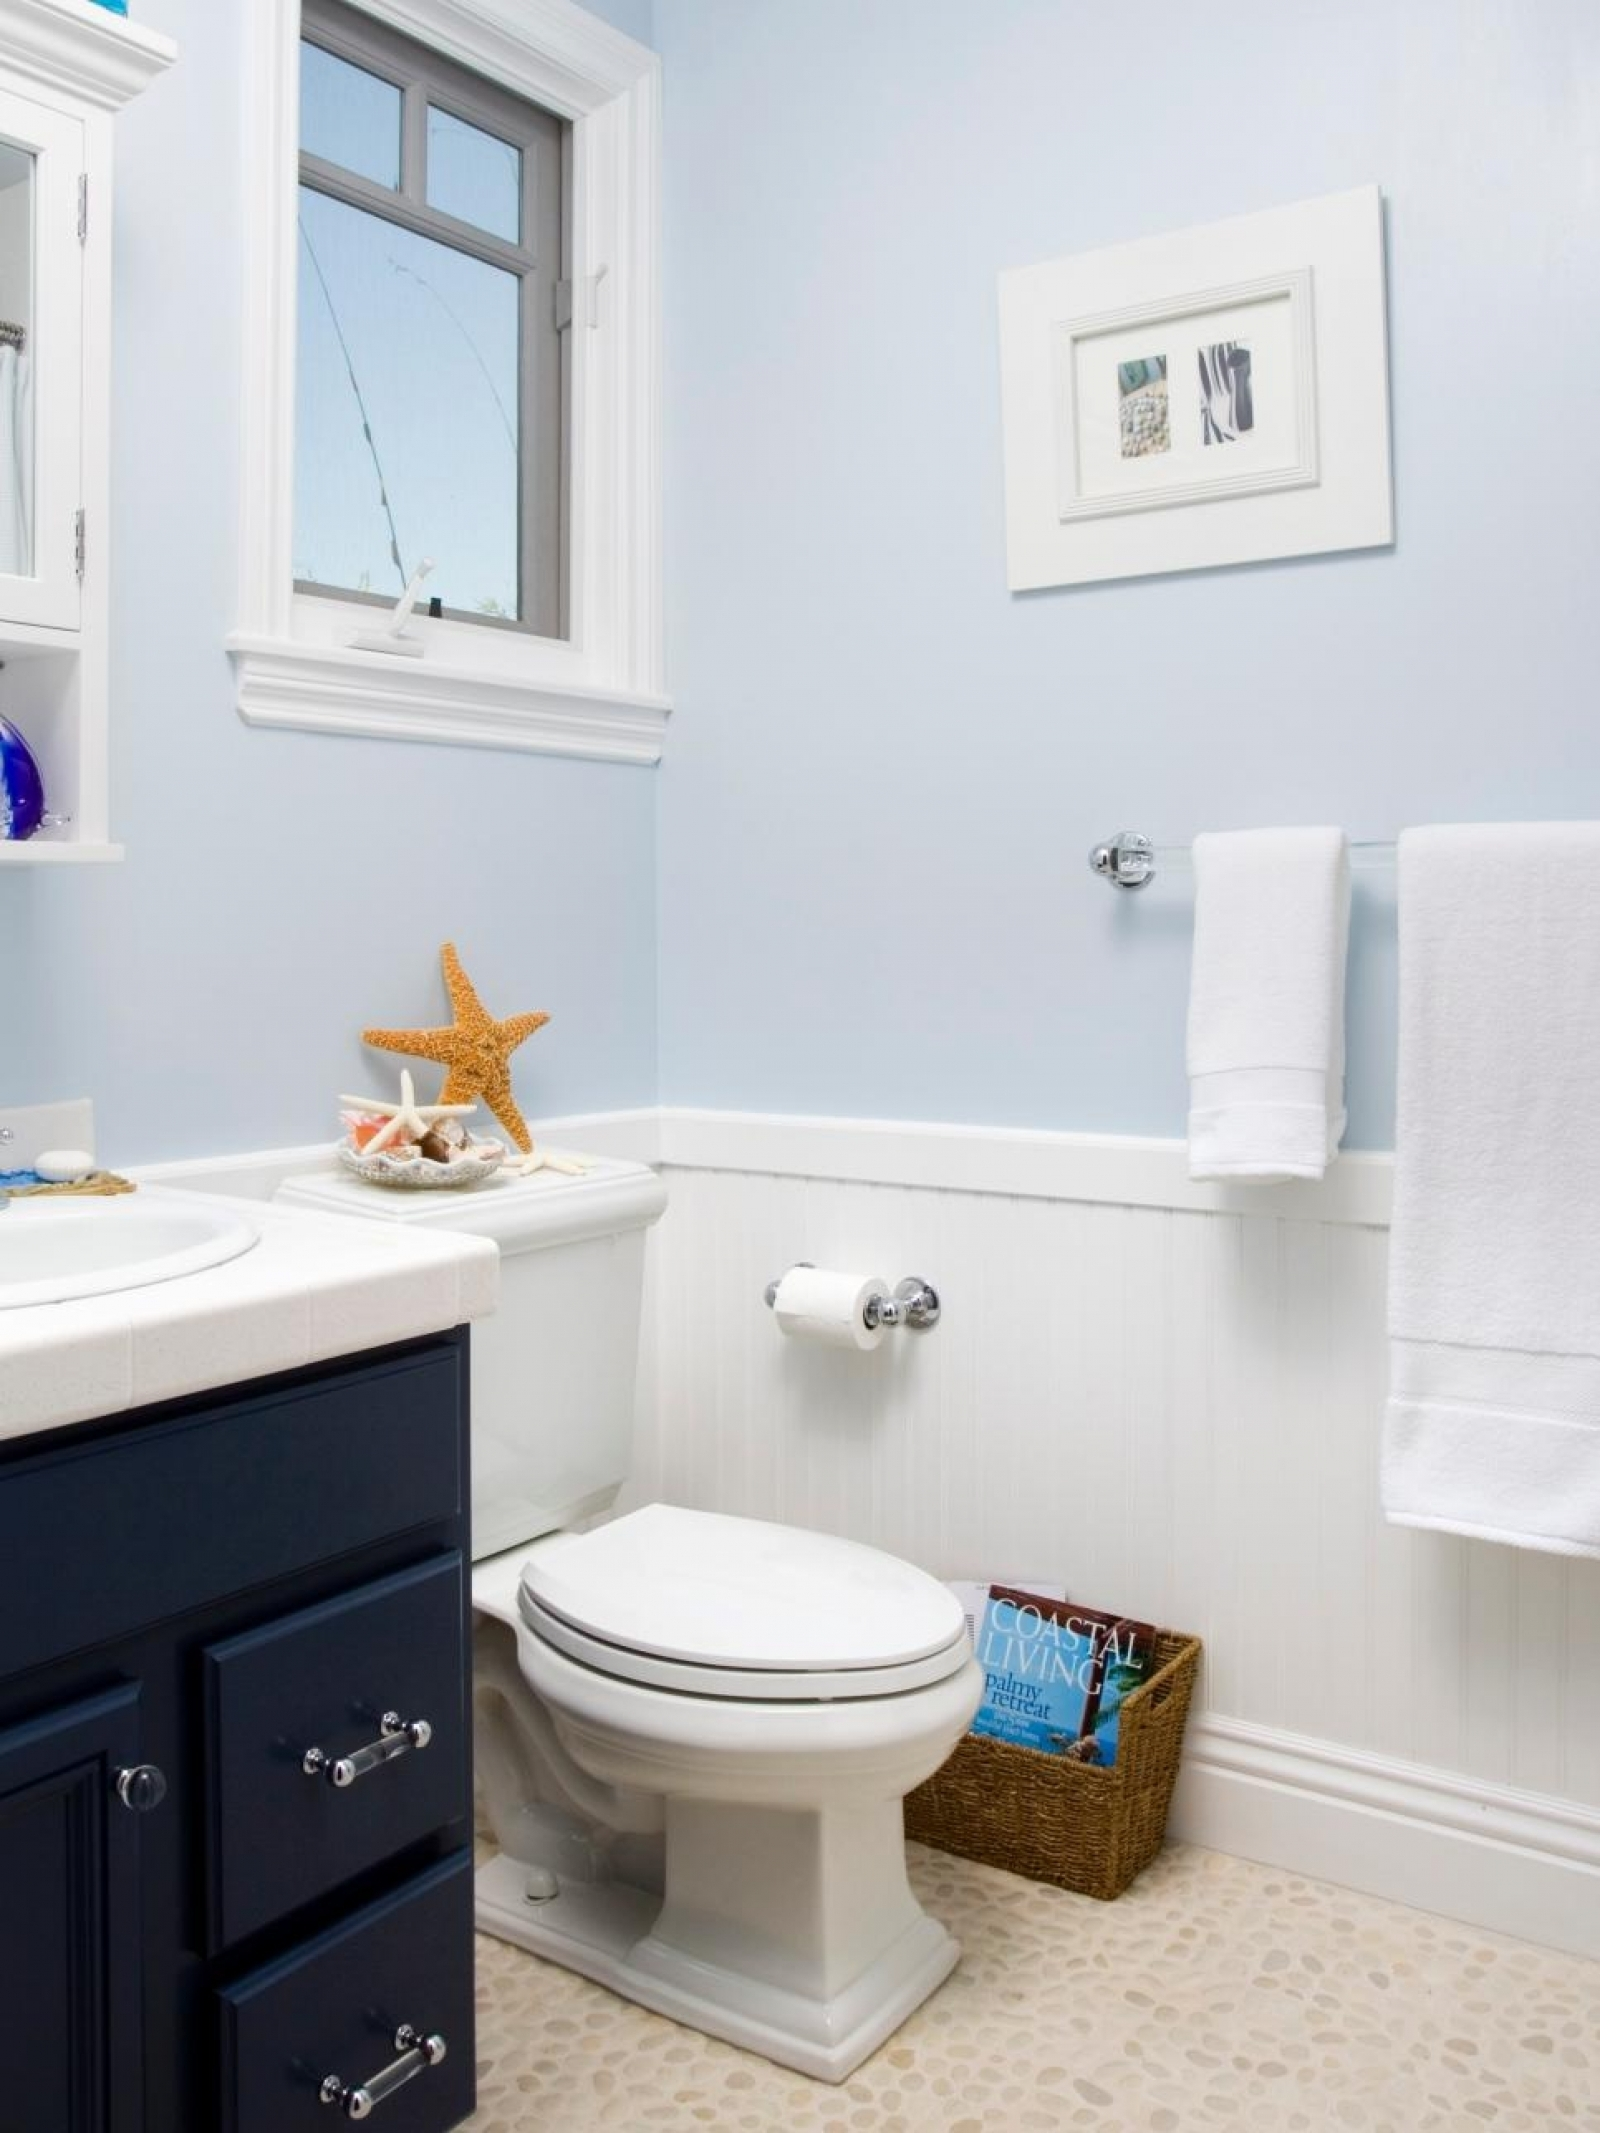 10 Beautiful Small Bathroom Design Ideas On A Budget %name